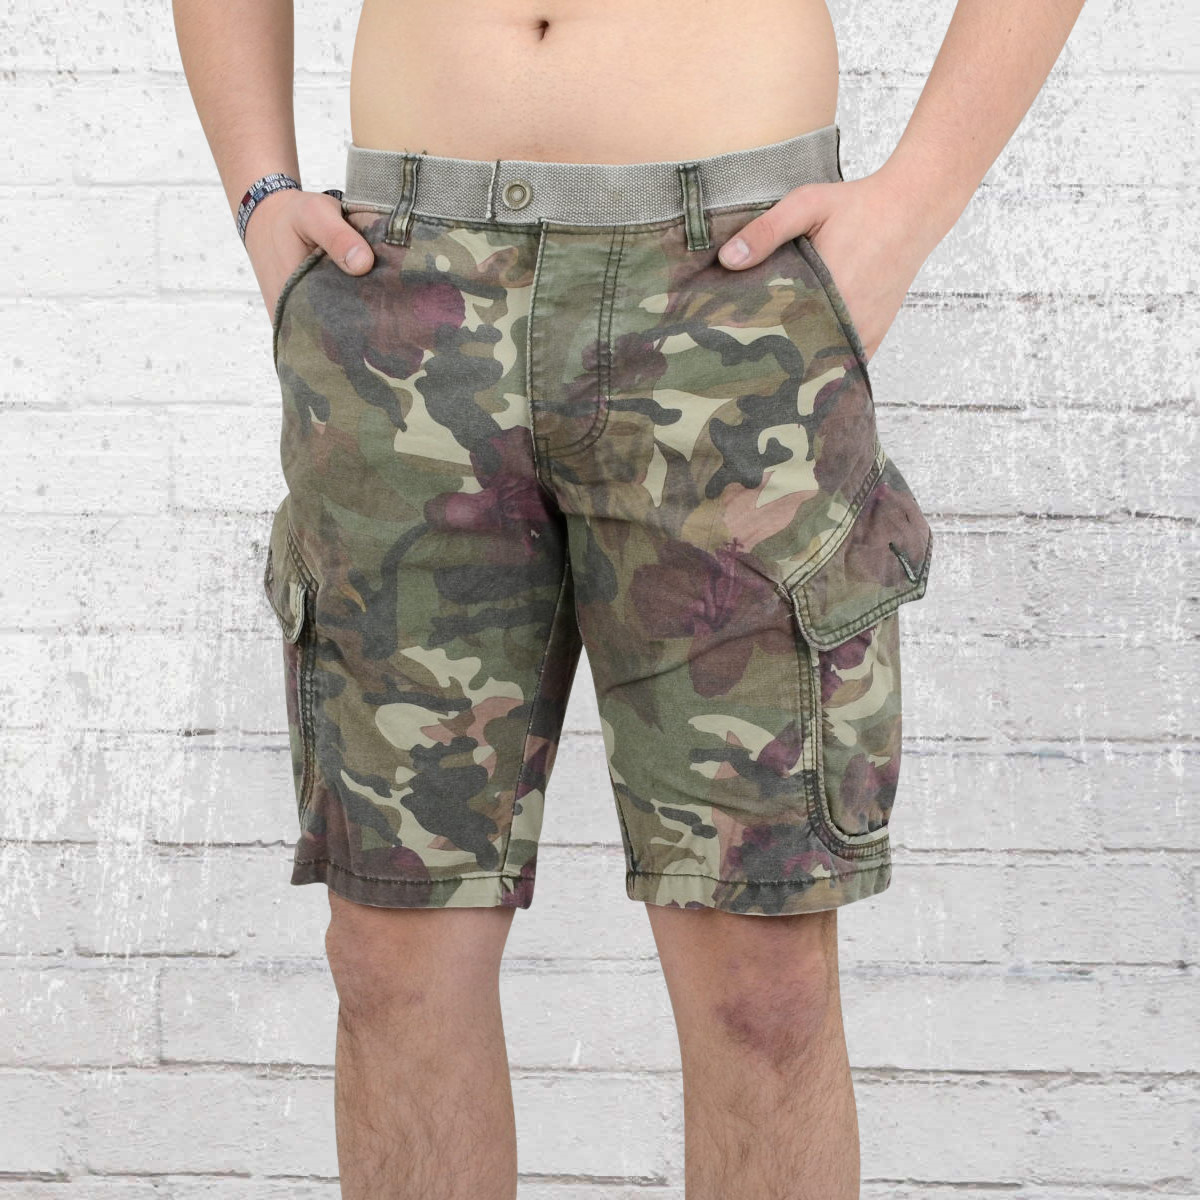 ae98397b25 Order now | Jetlag Men Cargo Army Shorts SO16-18 floral camouflage